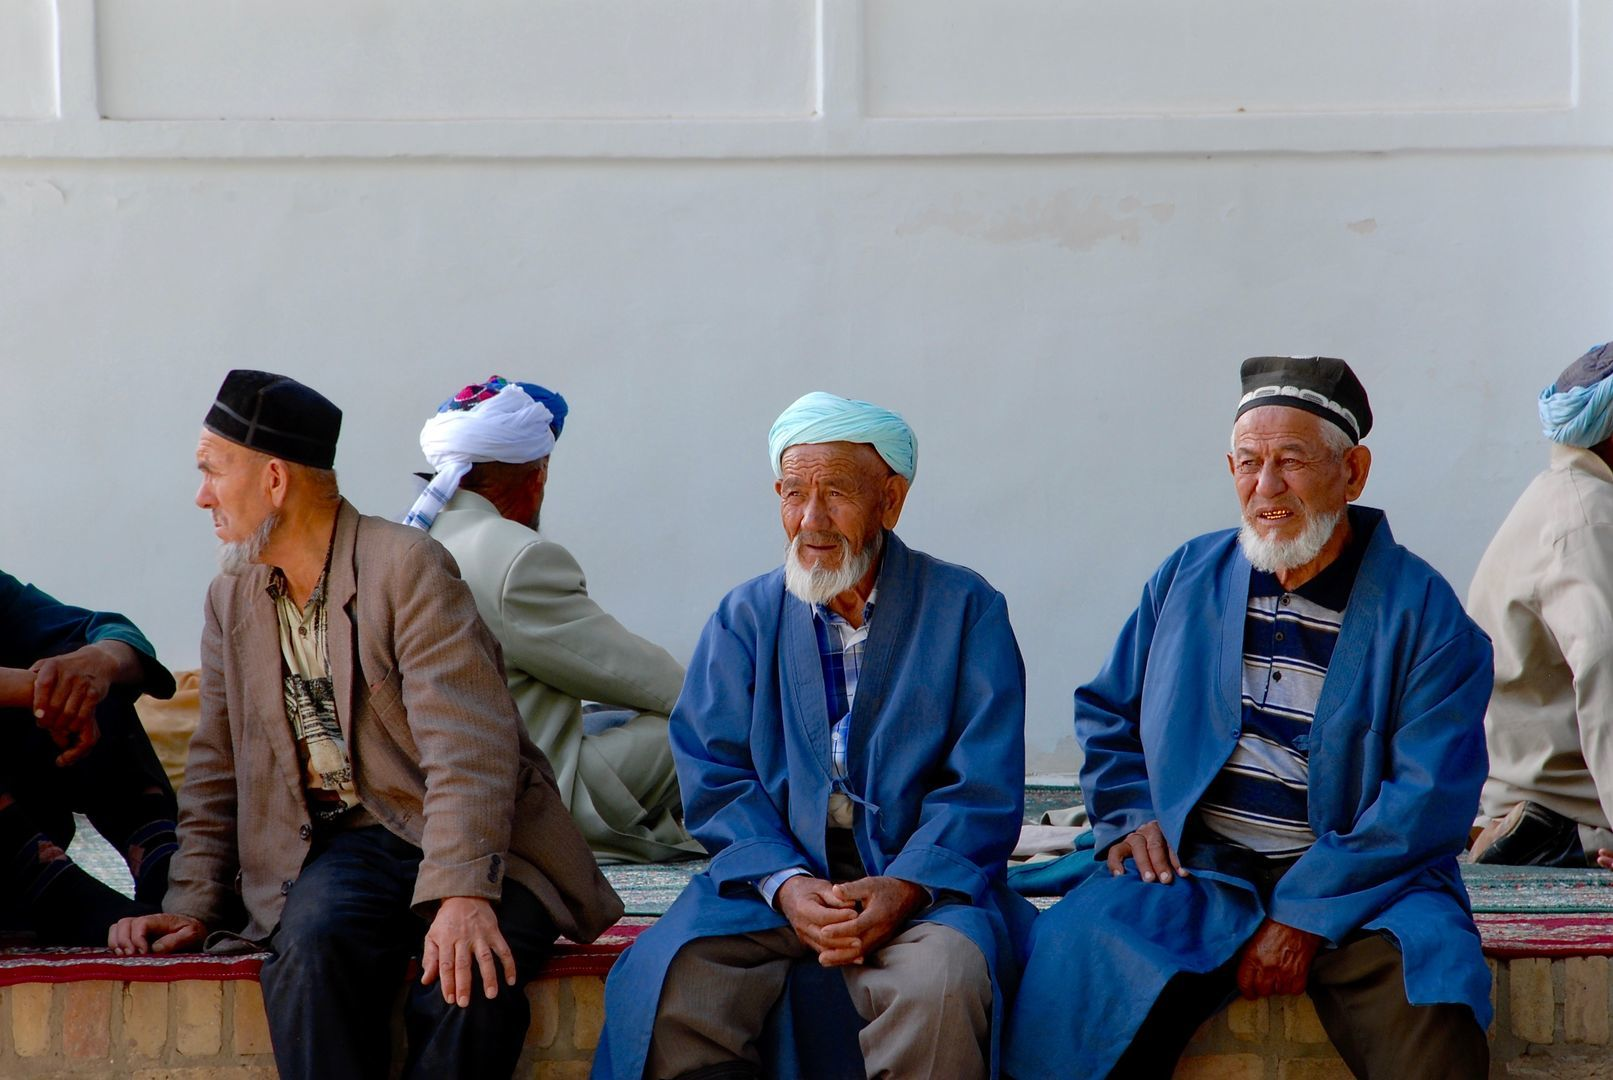 old Uzbek people sitting in front of the mosque central asia tour